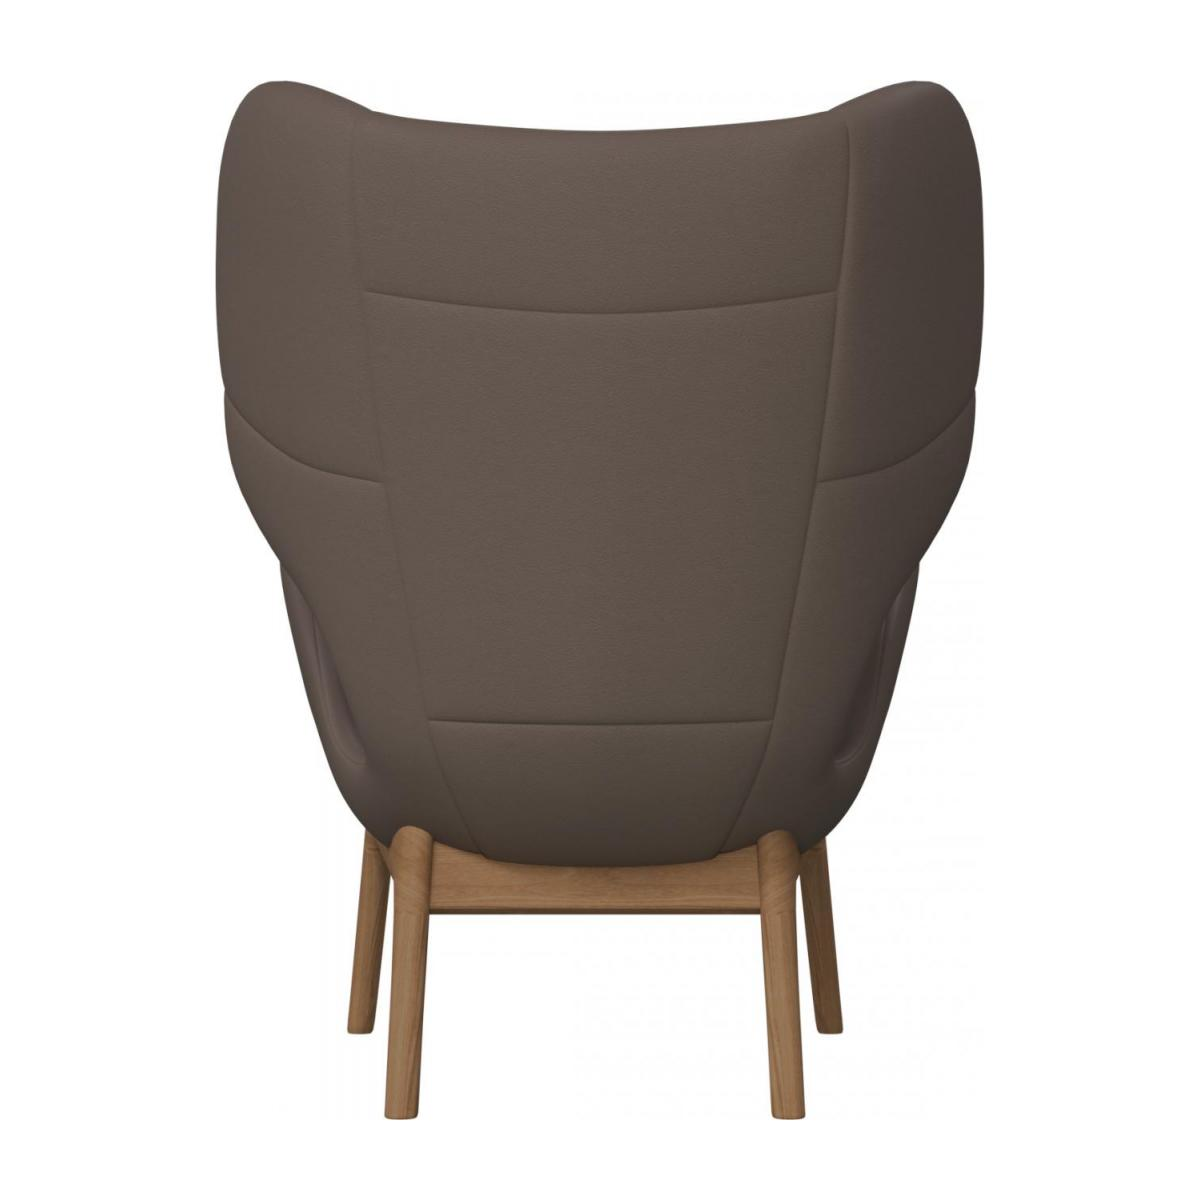 Armchair in Eton veined leather, stone n°4